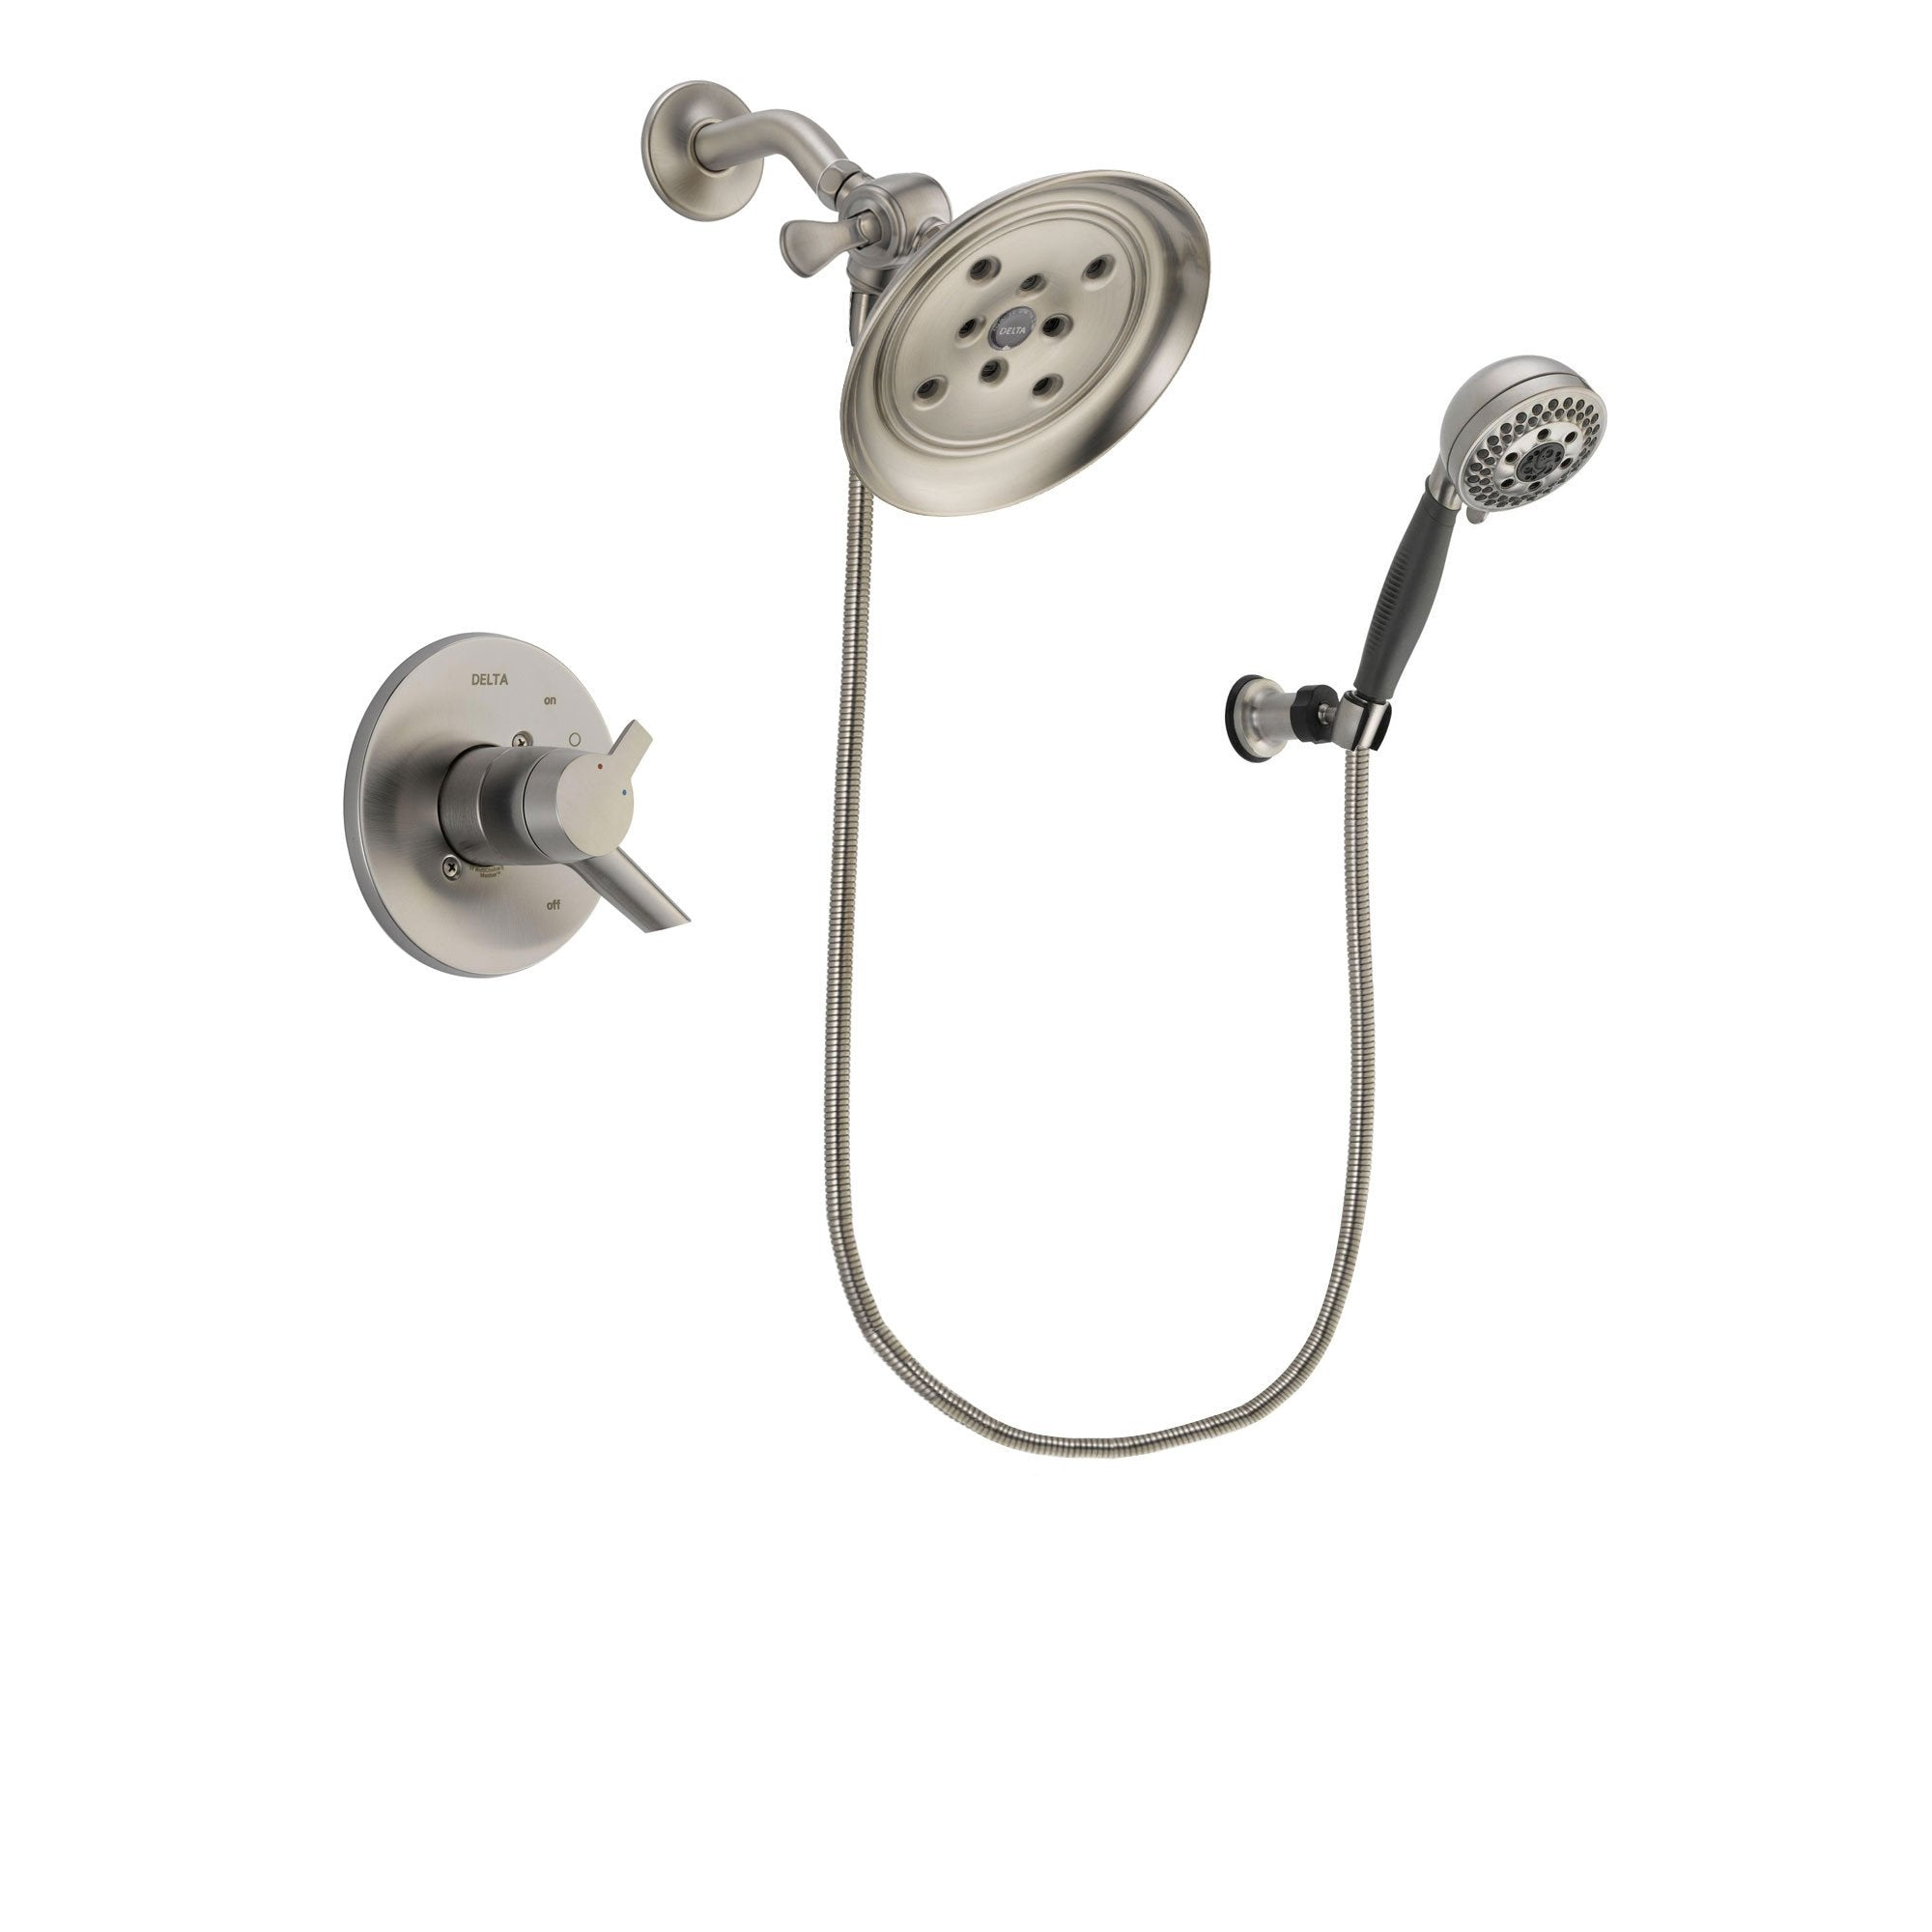 Delta Compel Stainless Steel Finish Shower Faucet System w/ Hand Spray DSP2014V